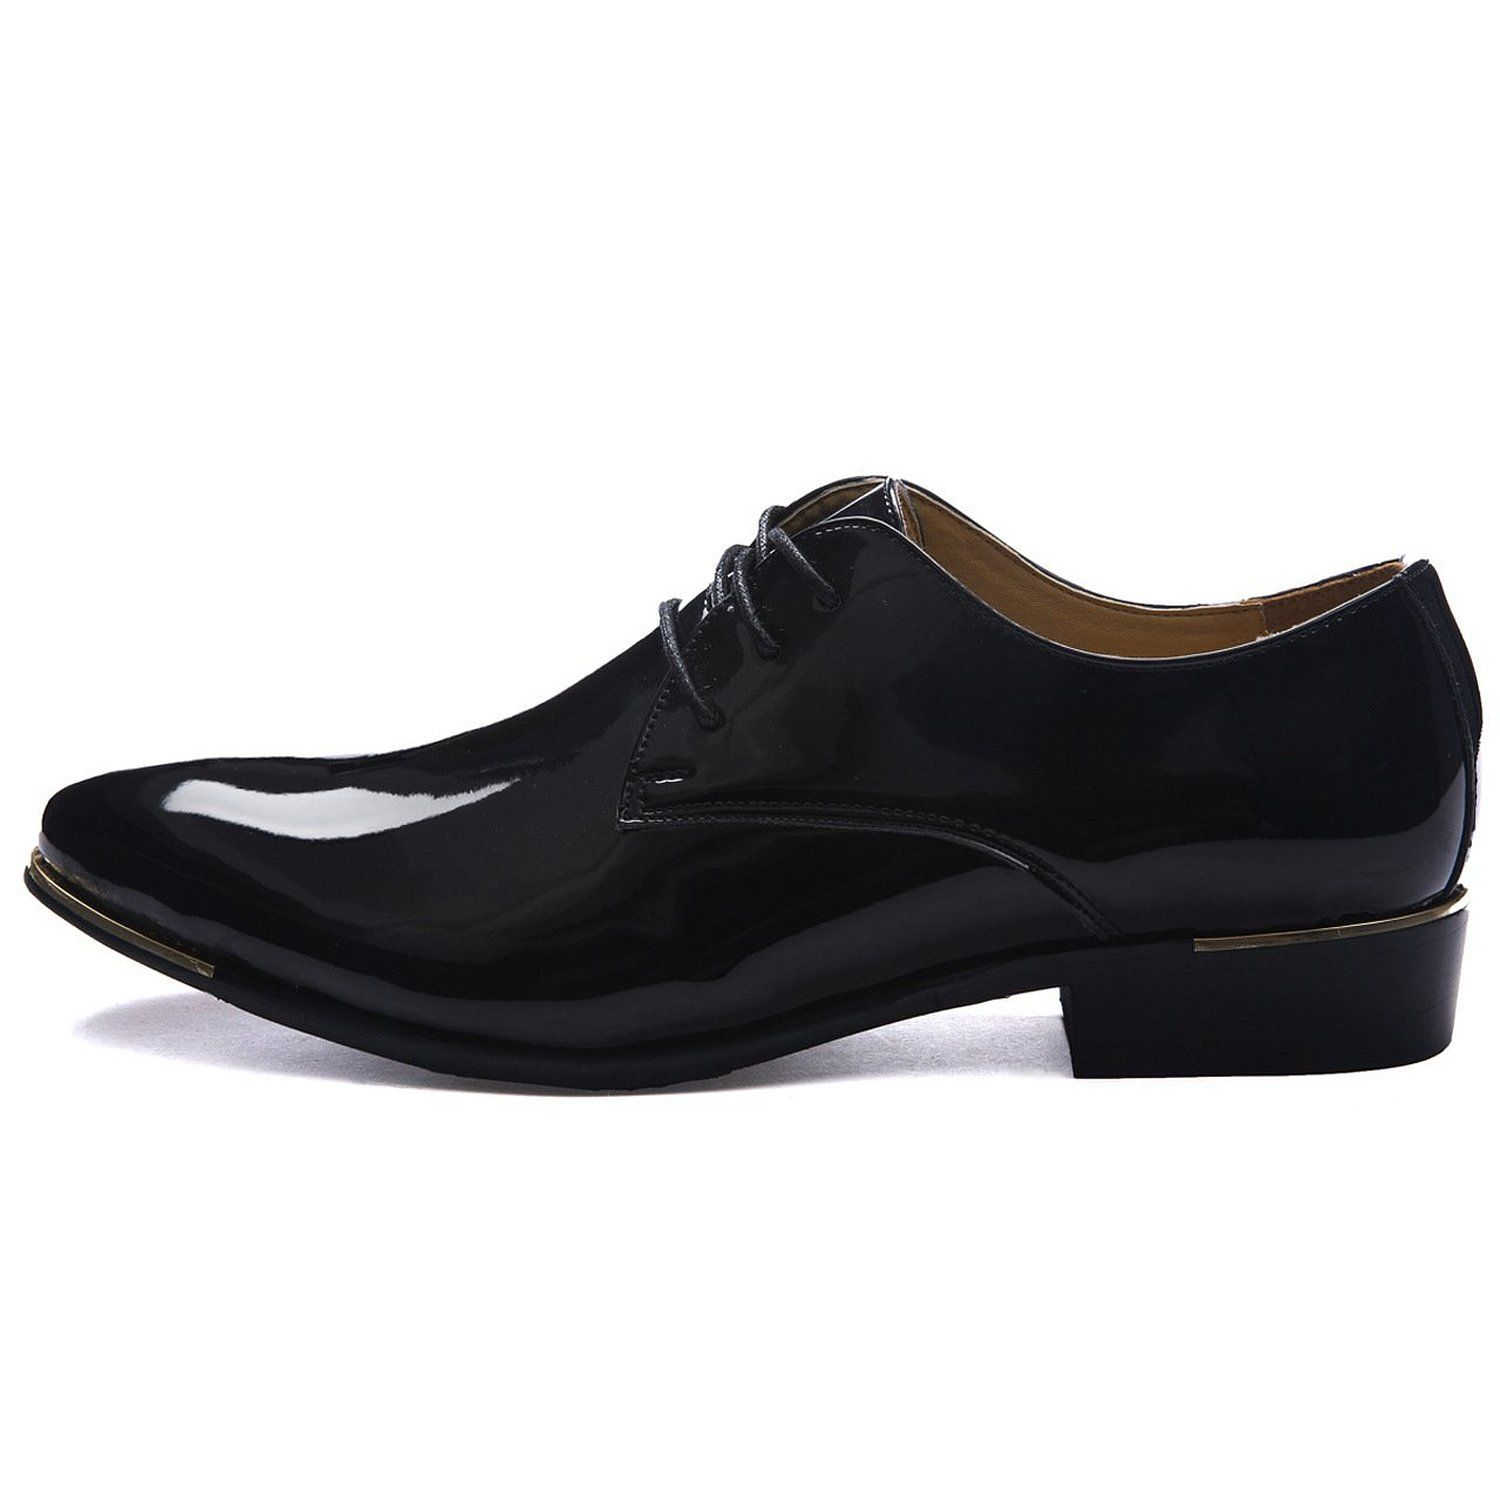 ed29d79672f15 Z-joyee Mens Patent Leather Tuxedo Dress Shoes Lace up pointed Toe ...